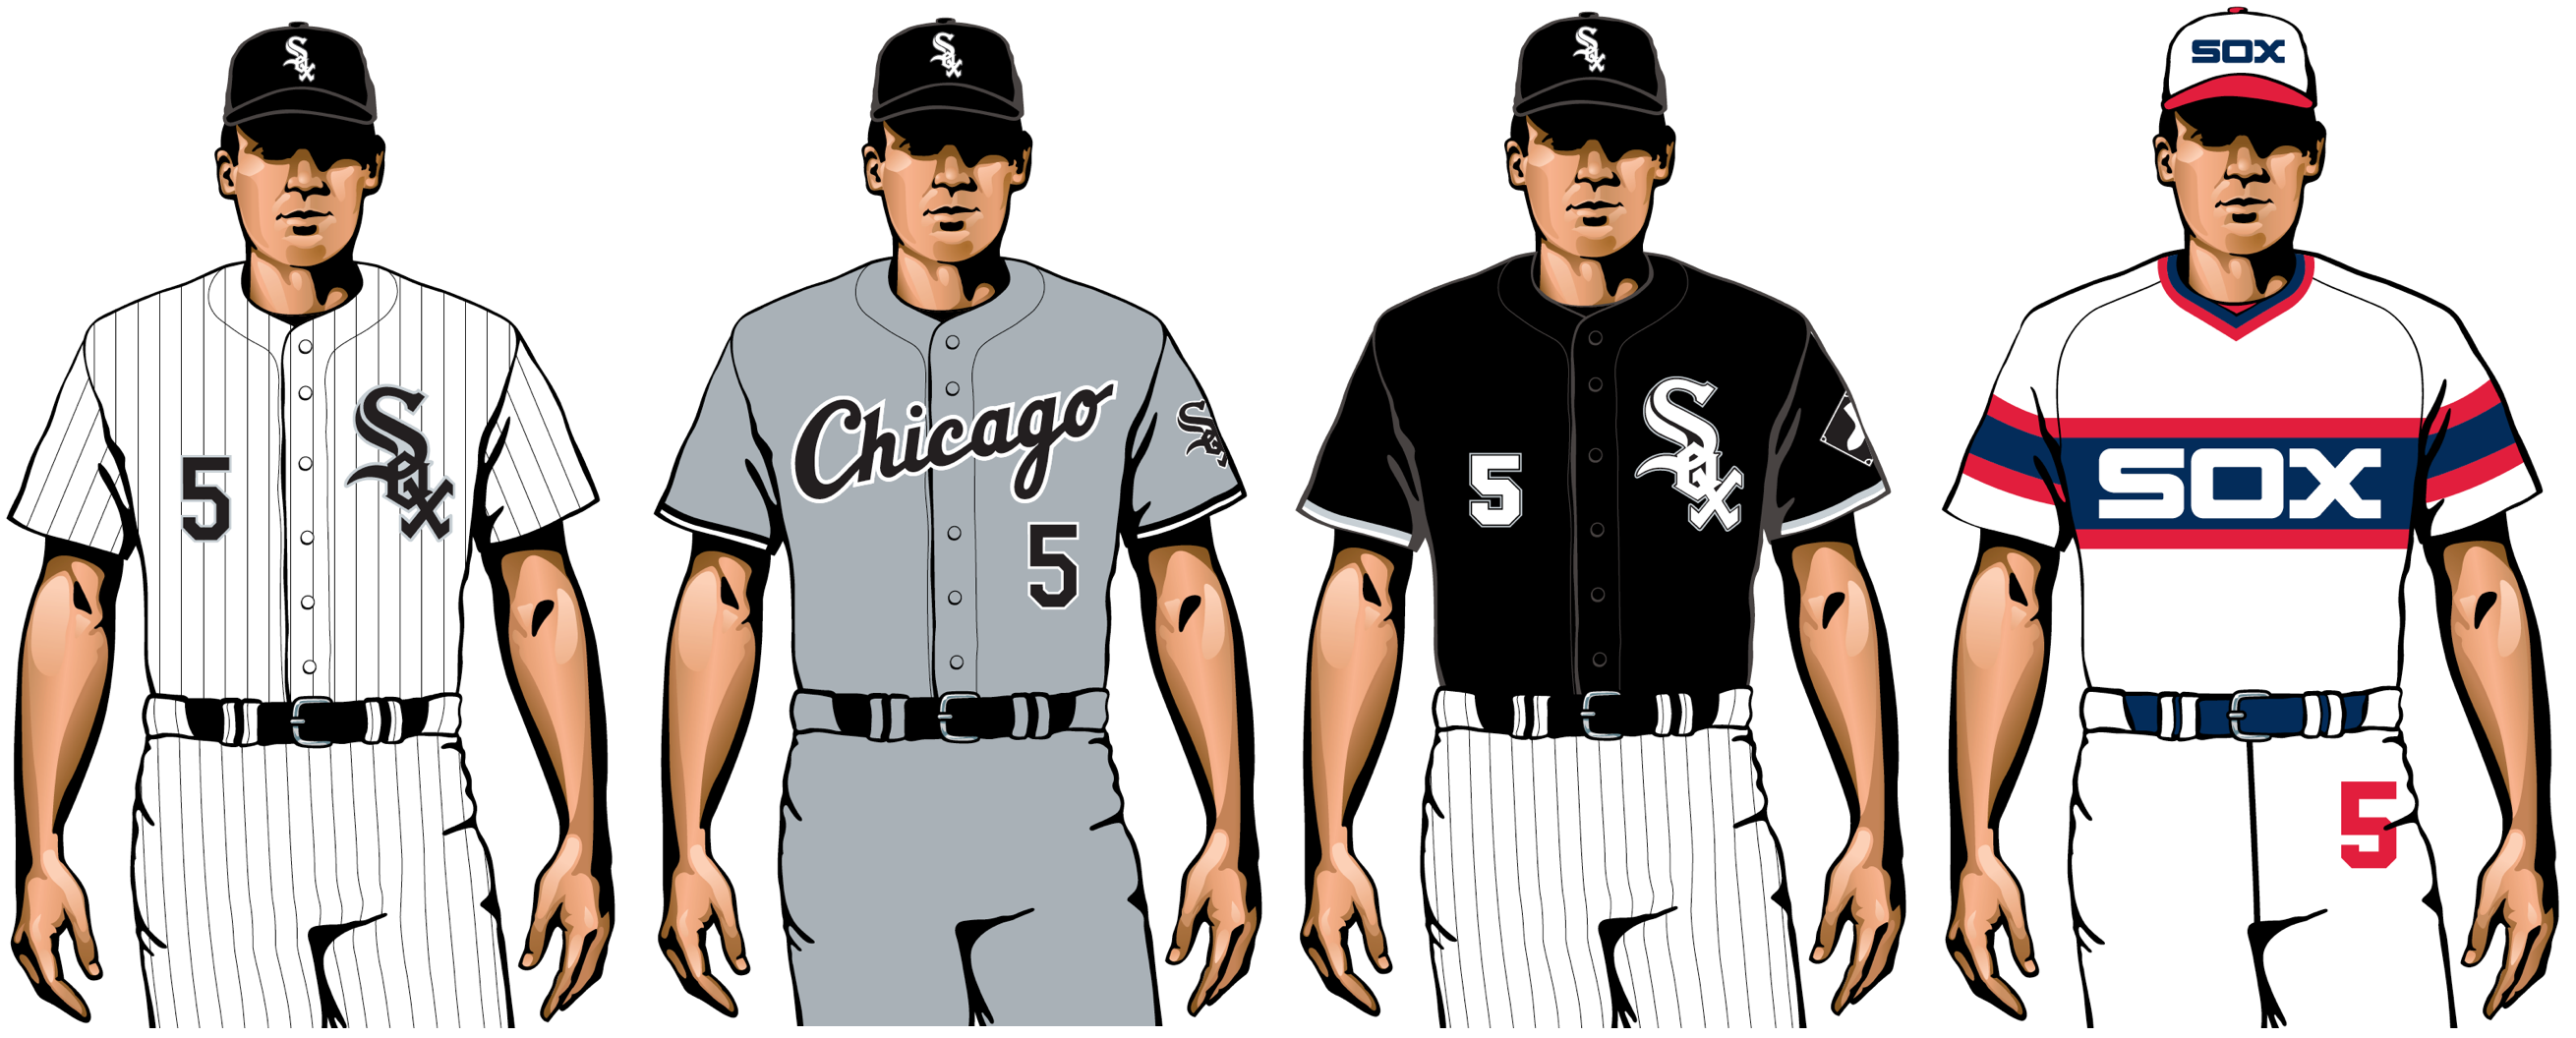 chicago white sox 2020 uniforms